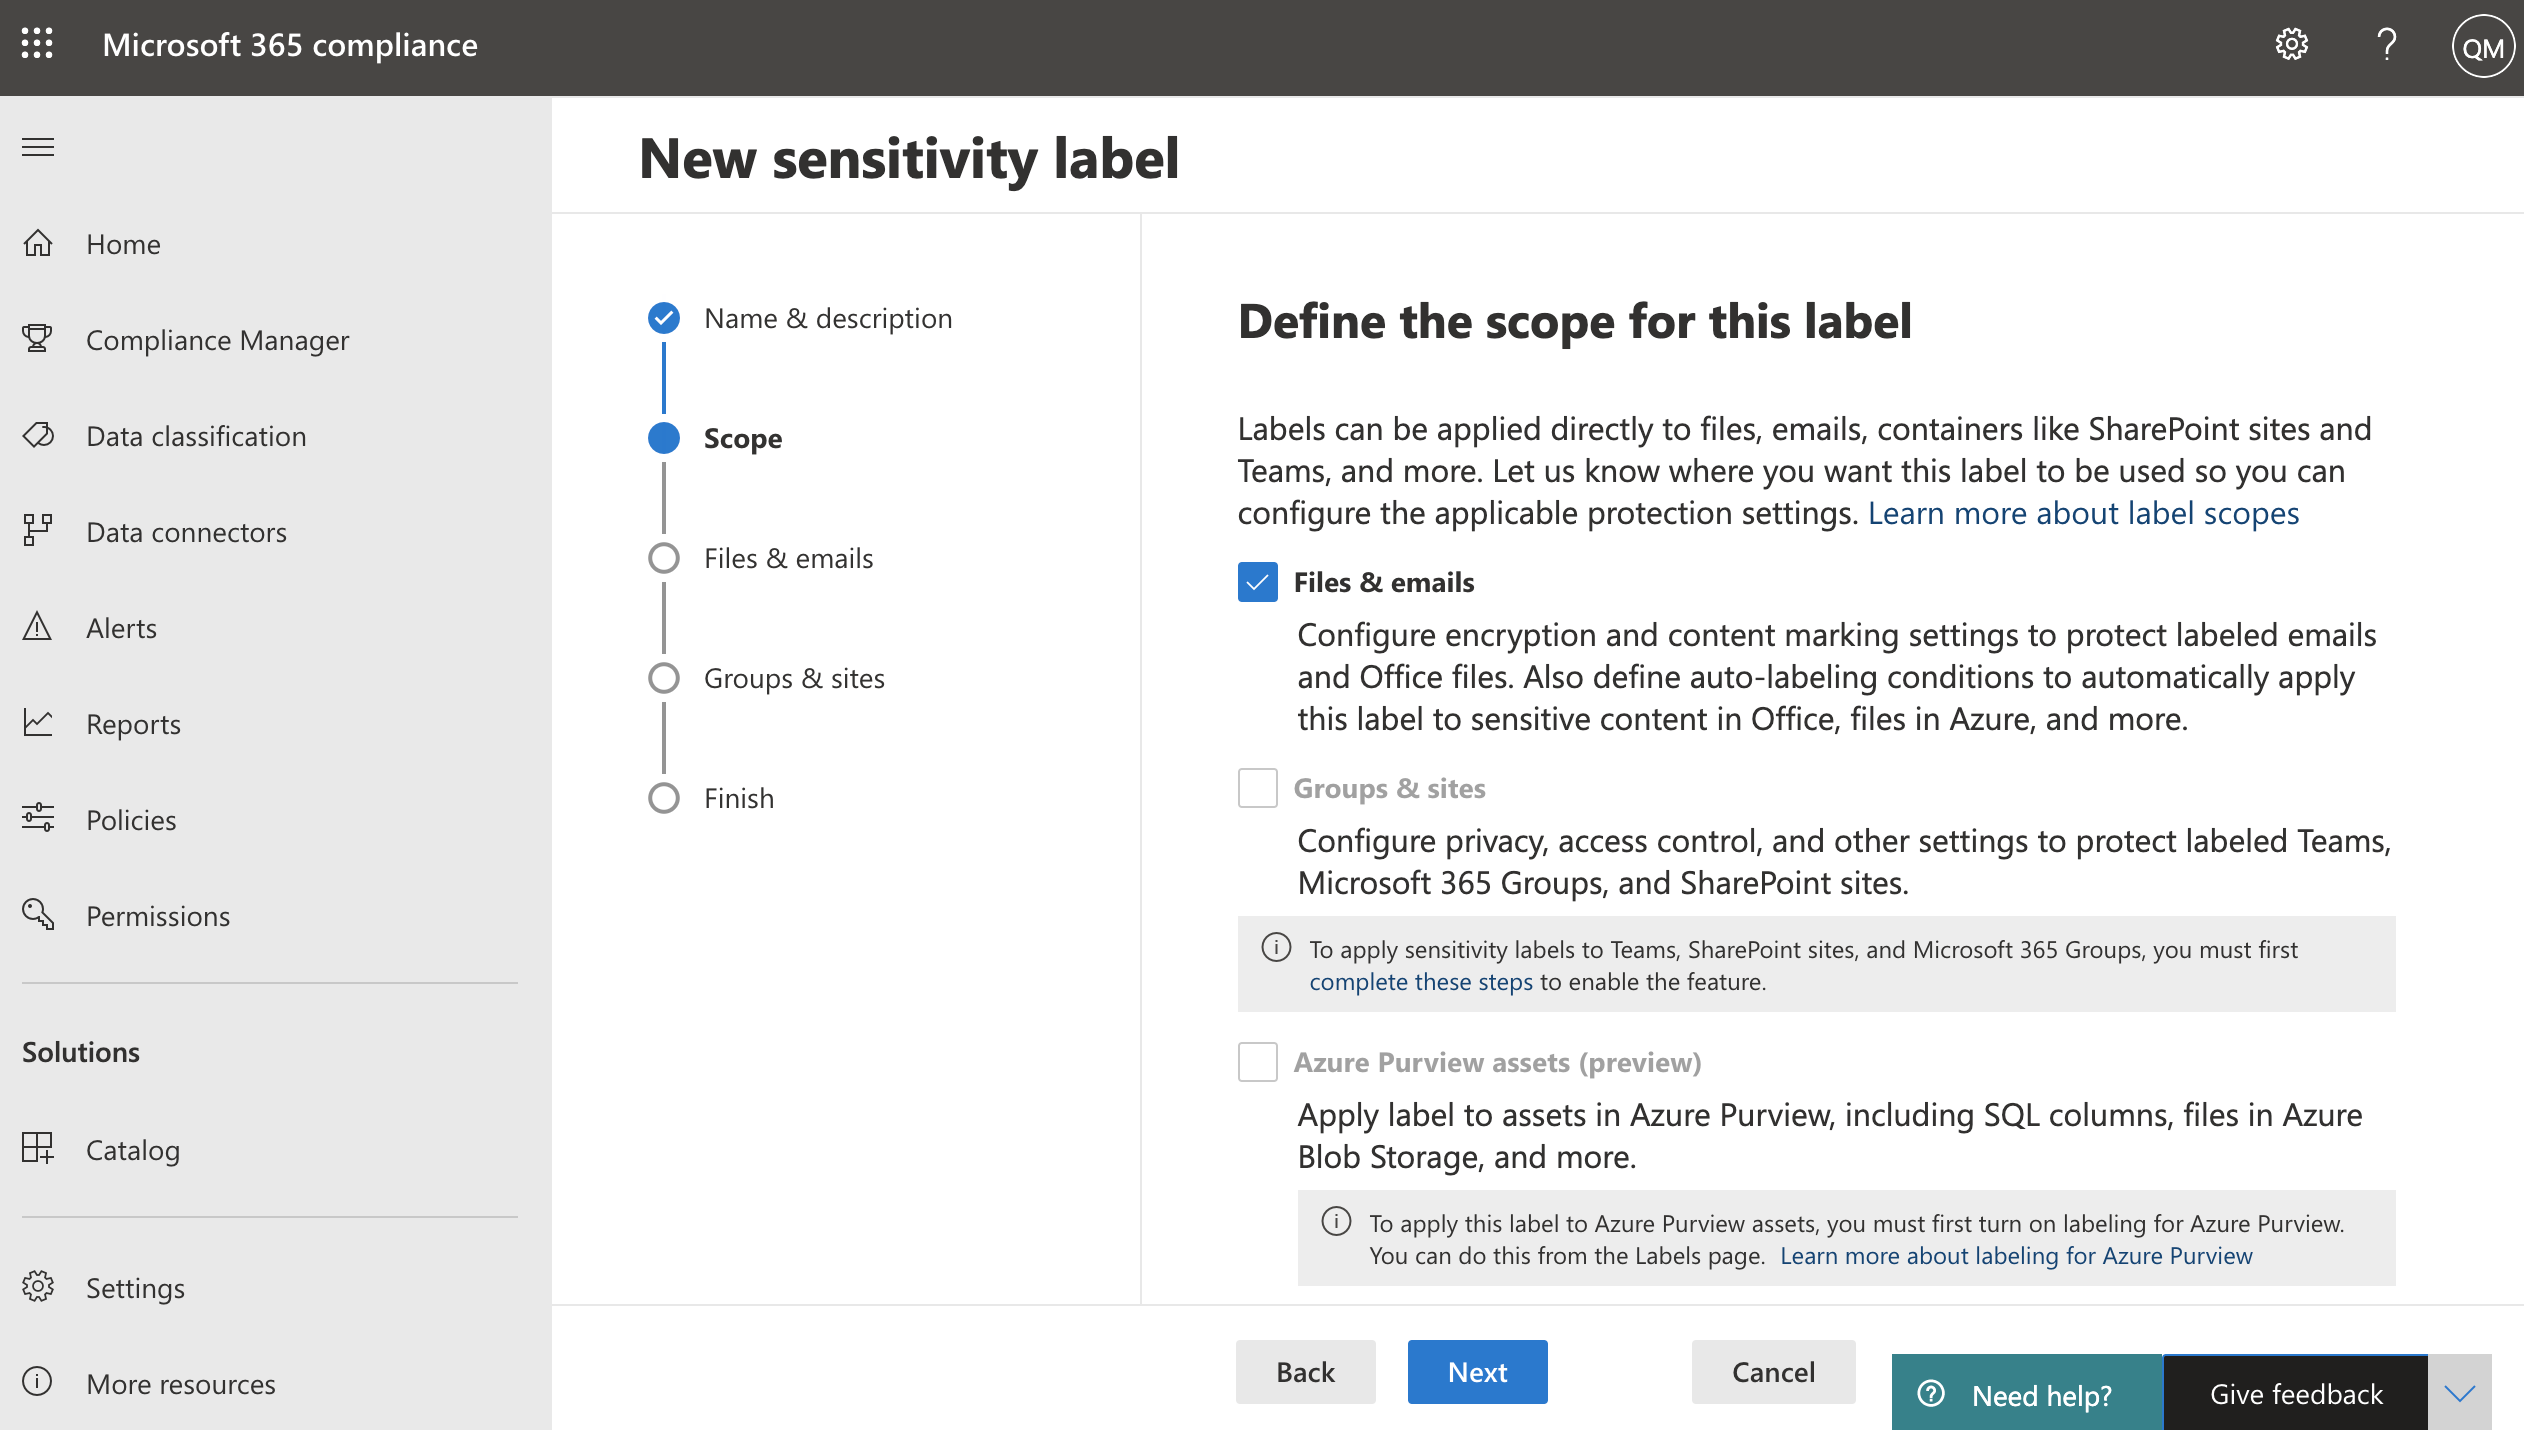 image of sensitivity label settings in Microsoft 365 compliance center